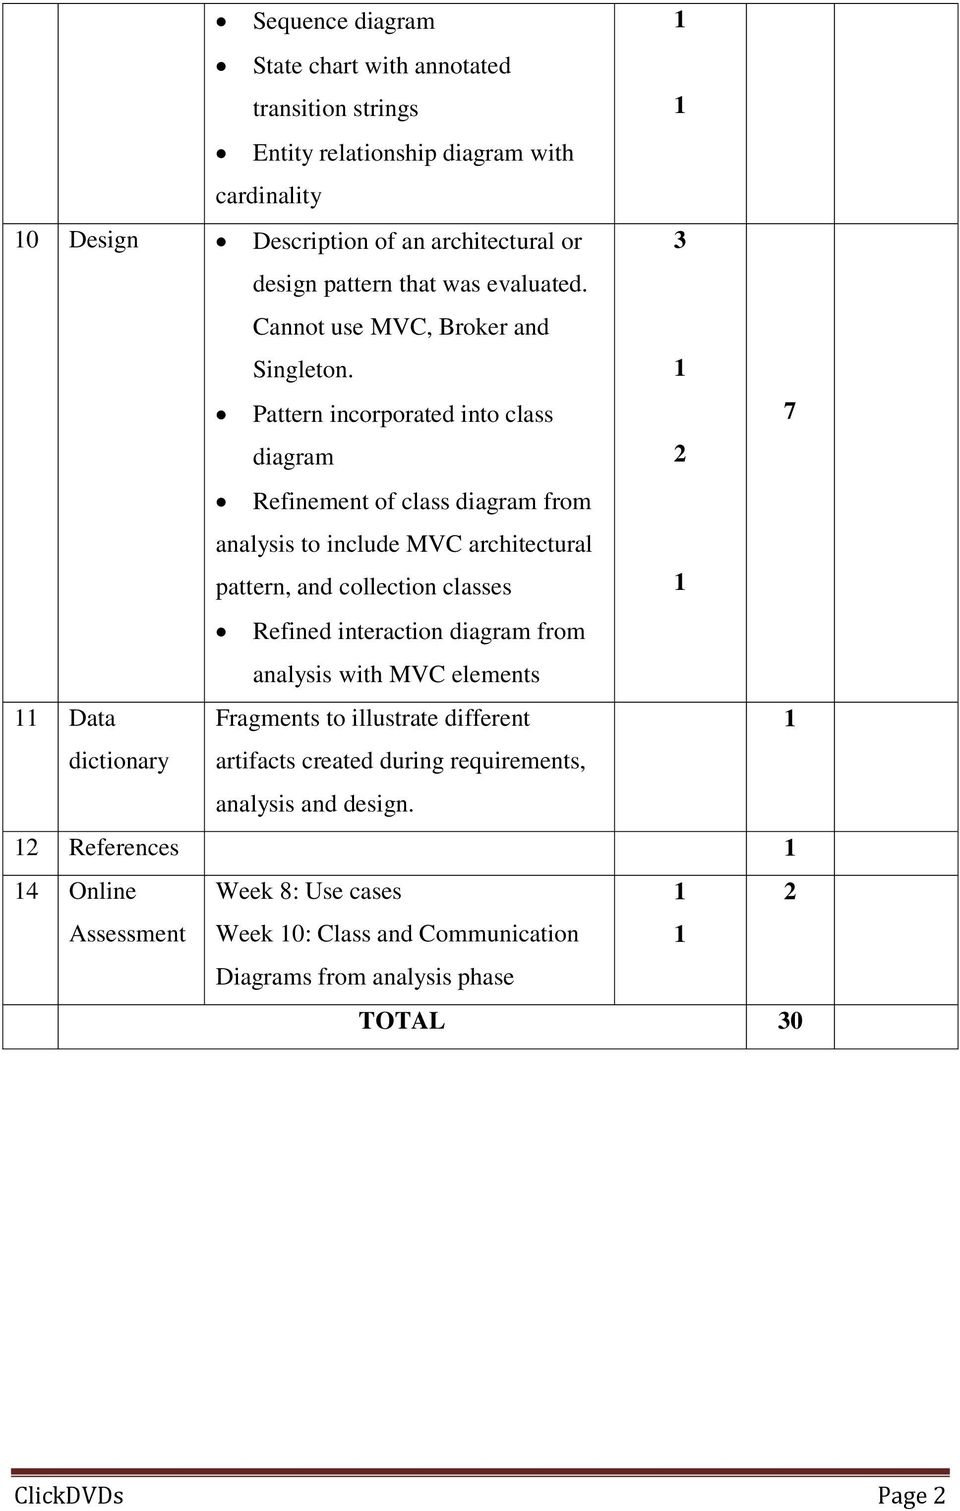 hight resolution of 3 1 pattern incorporated into class 7 diagram 2 refinement of class diagram from analysis to